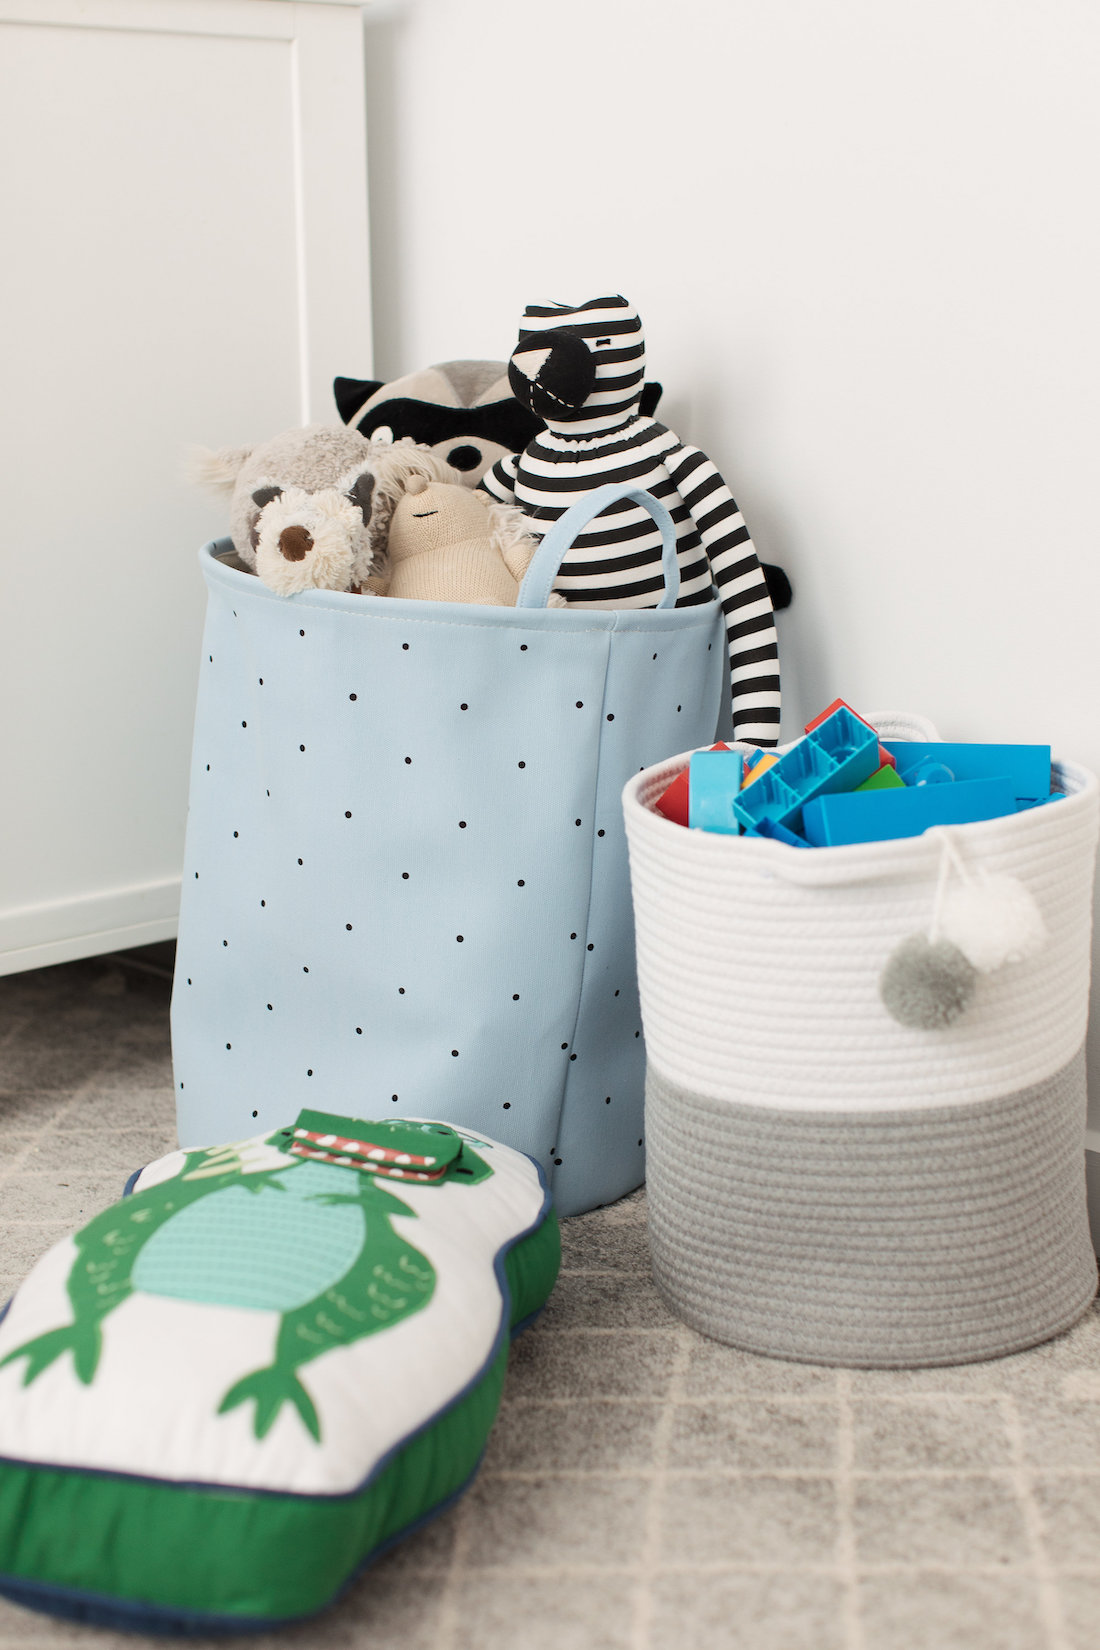 Basket storage stylish and functional kids bedroom